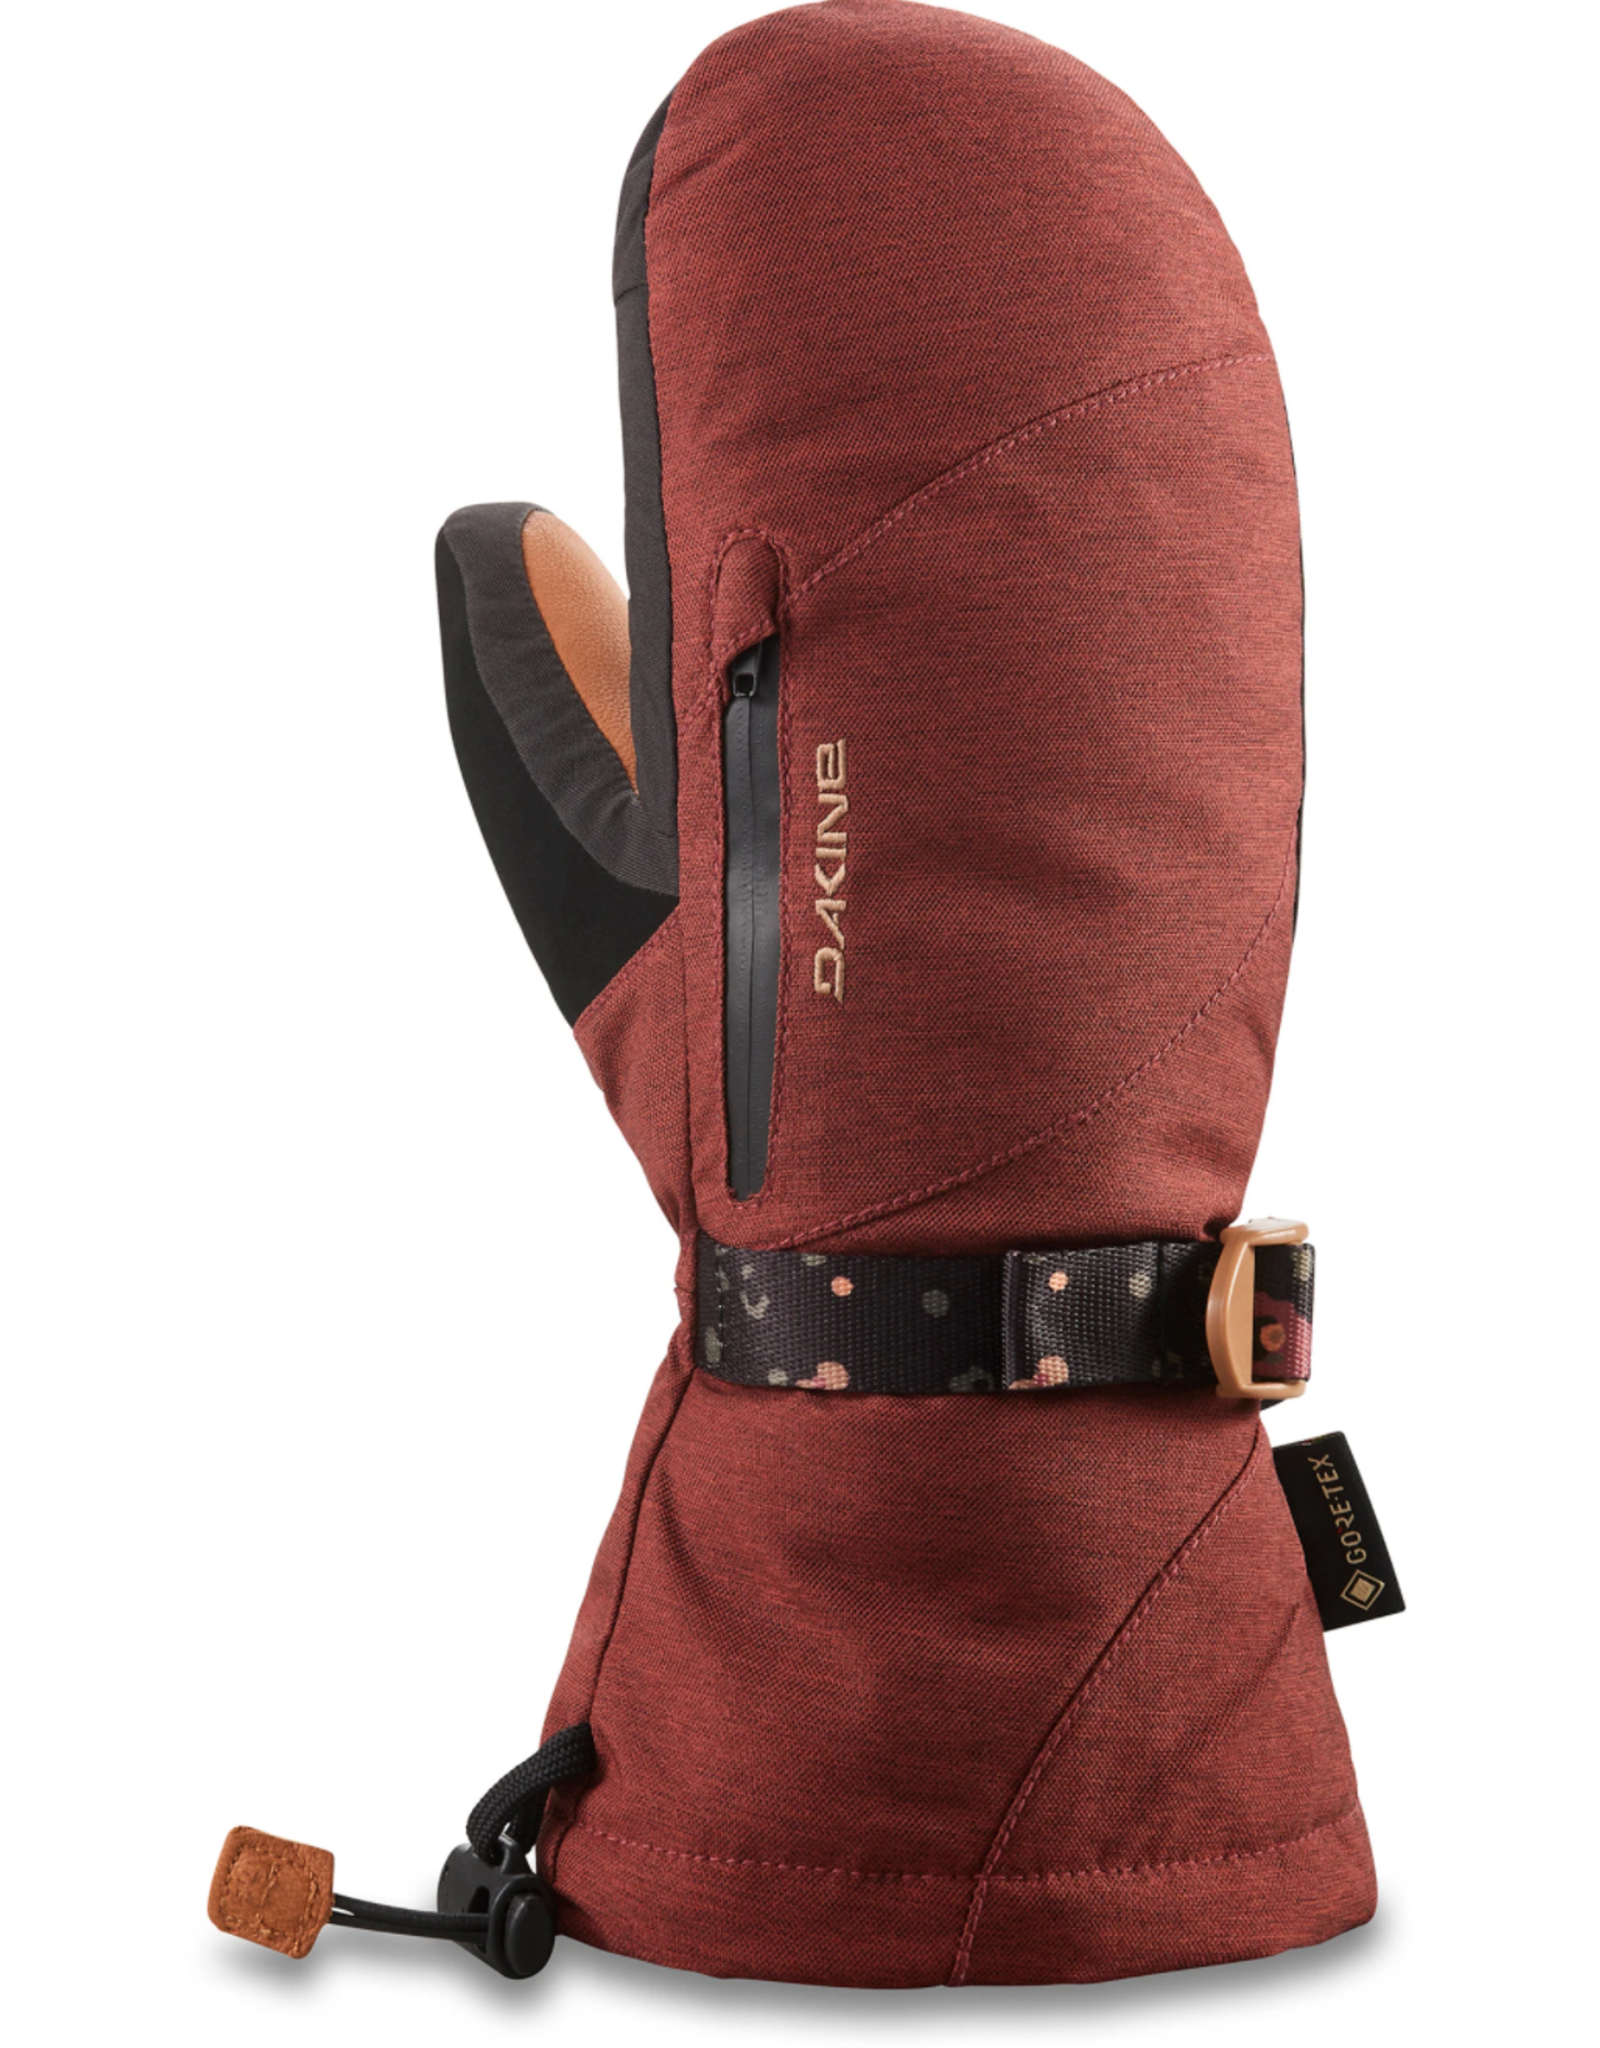 Dakine DAKINE LEATHER SEQUOIA MITT GORE-TEX DARK ROSE